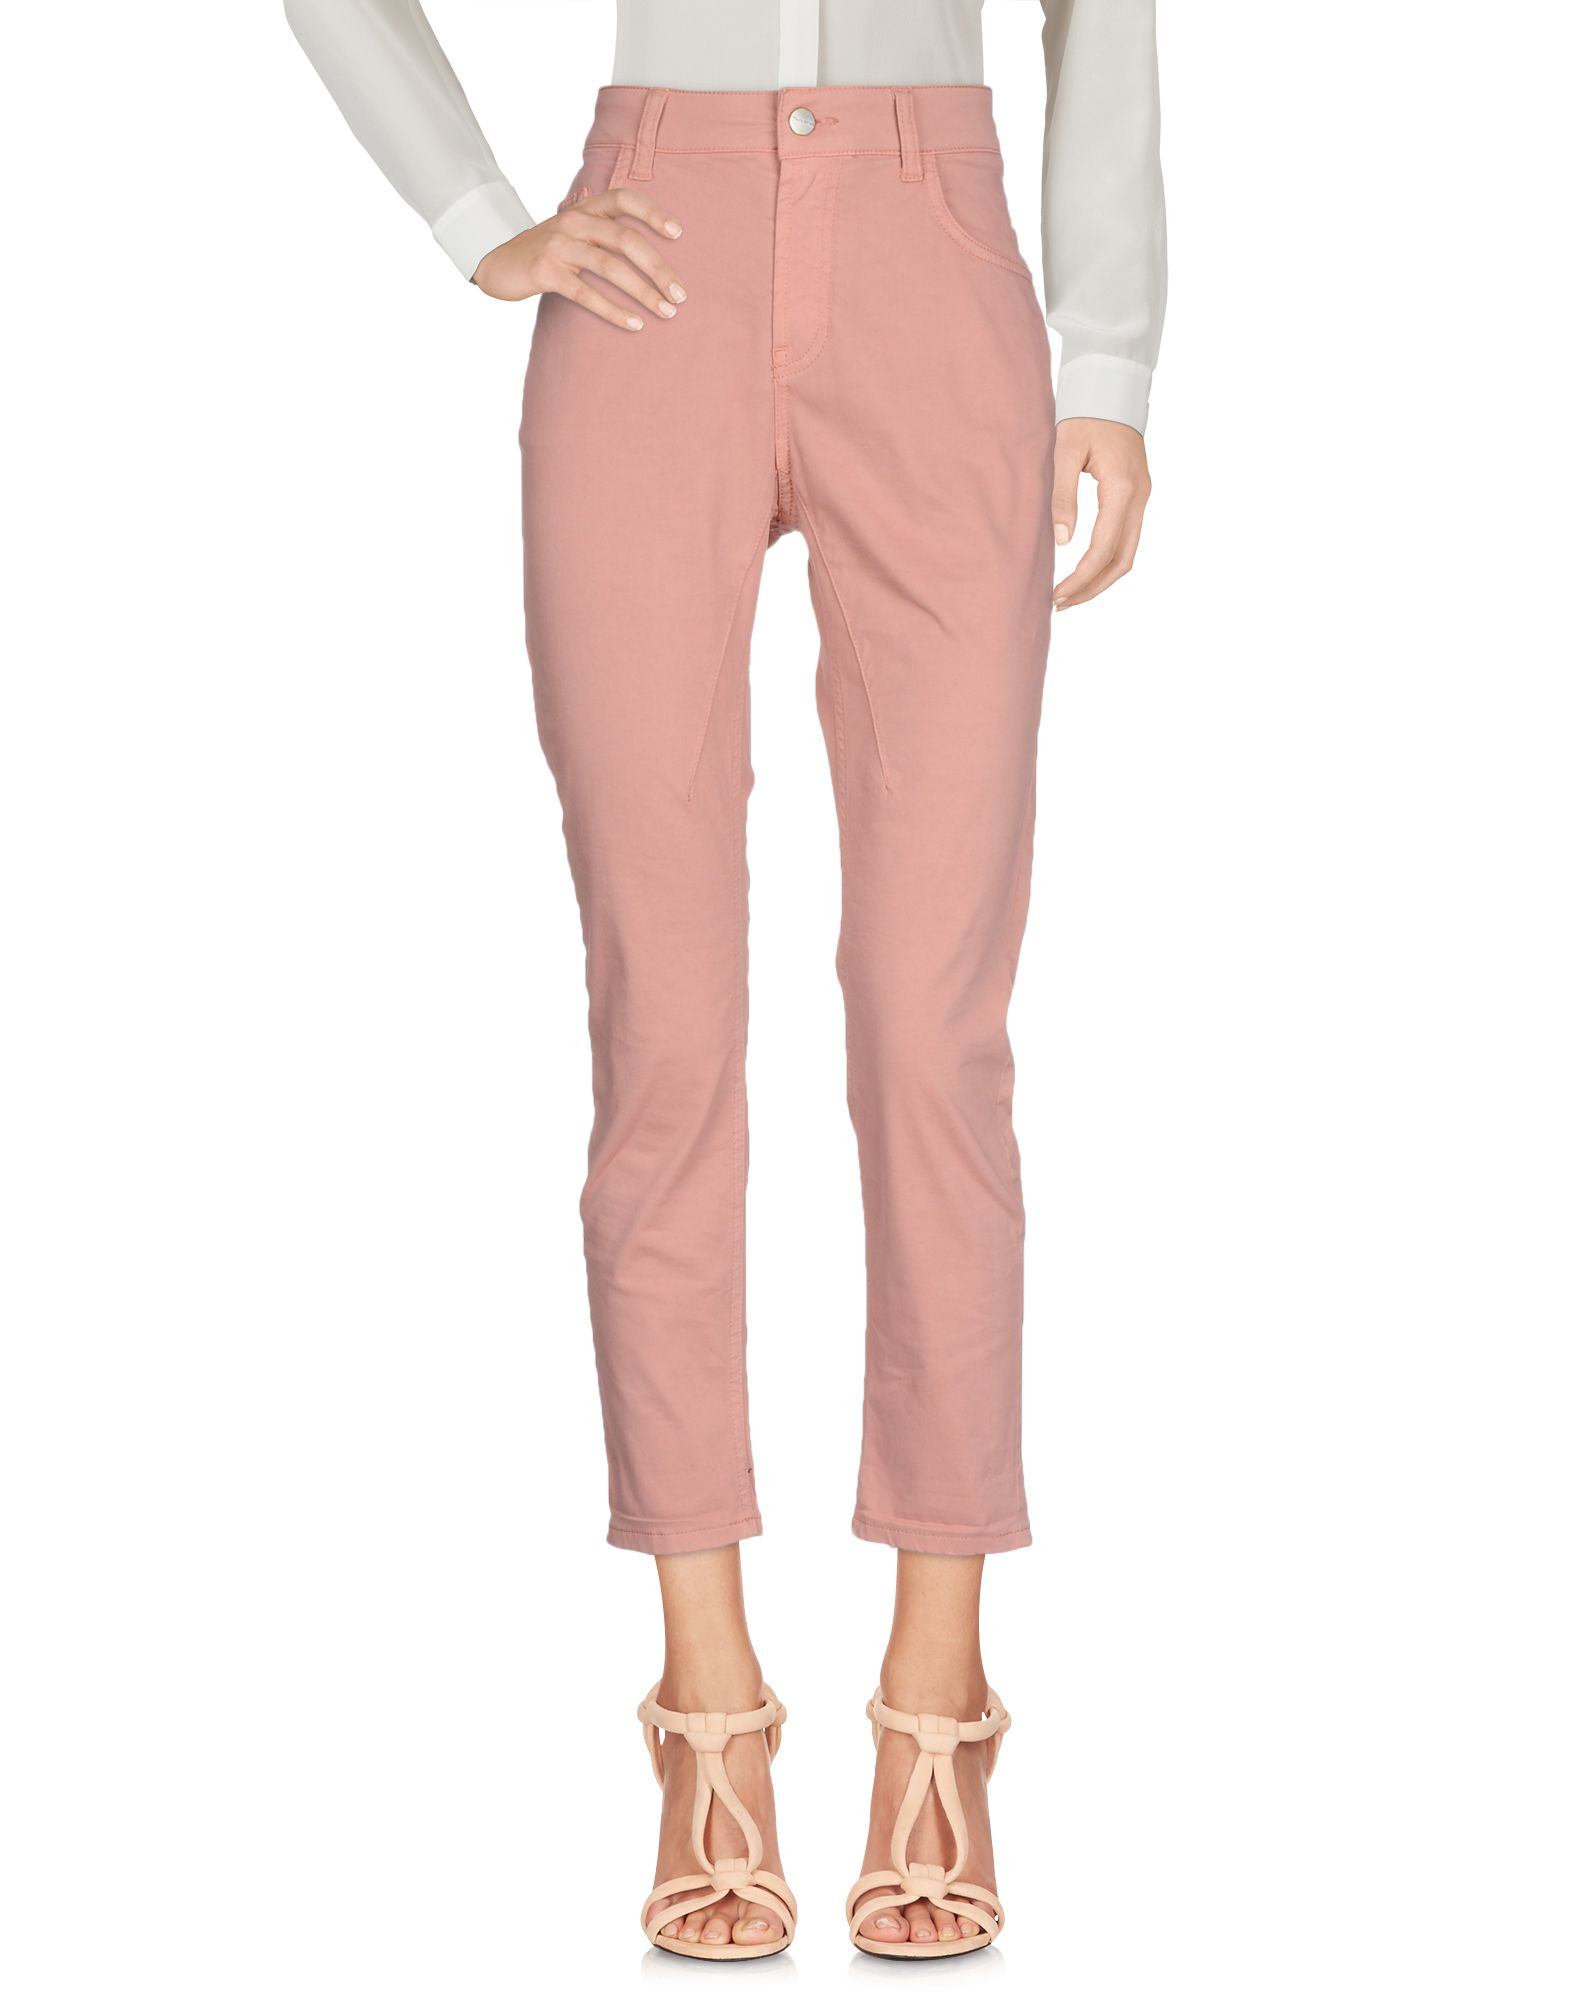 MANILA GRACE Casual Pants in Pastel Pink